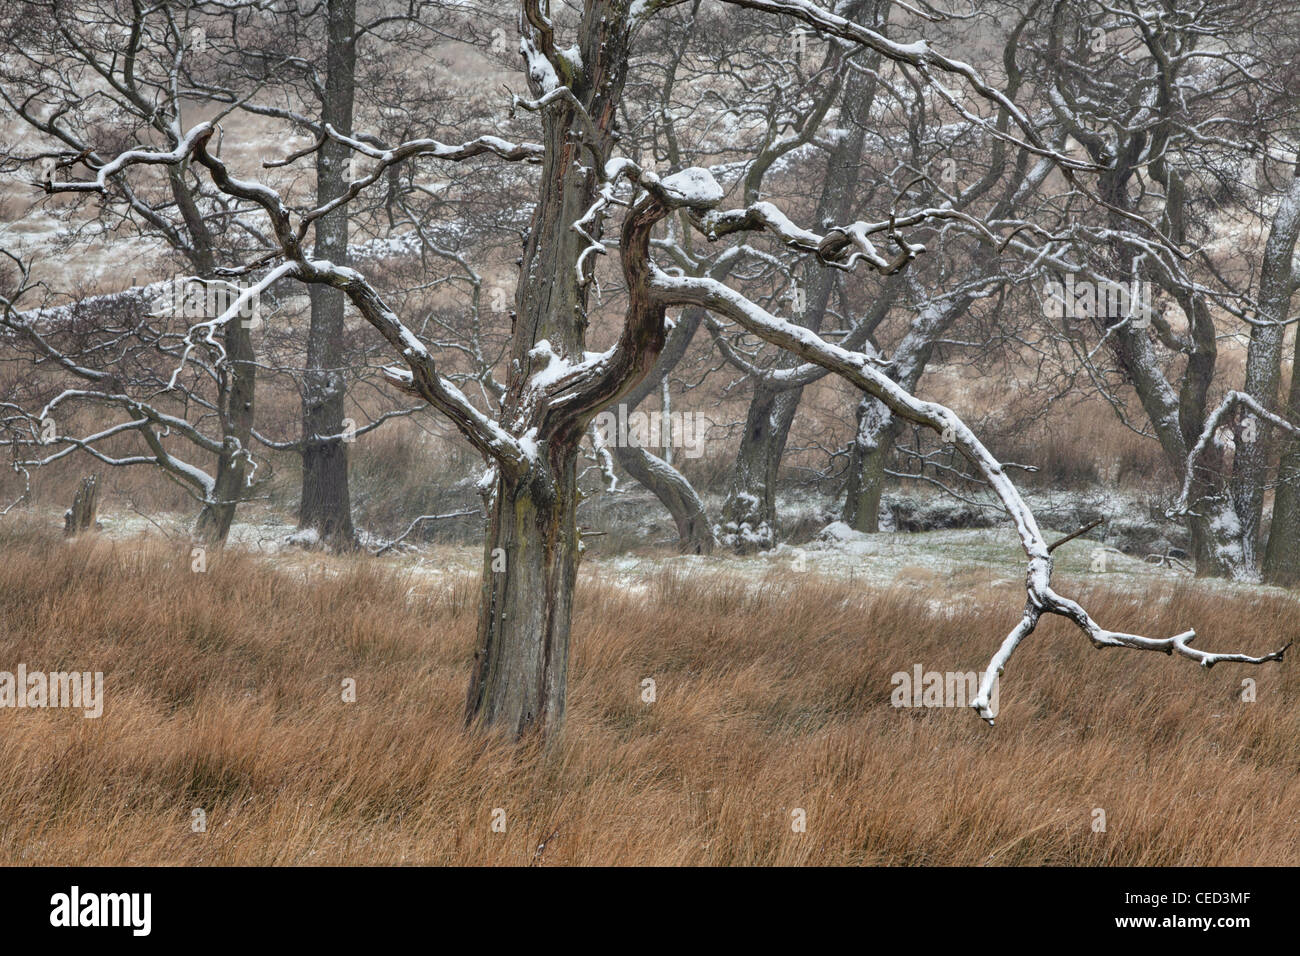 Snow covers tree branches in a field near Blubberhouses, Yorkshire, England - Stock Image